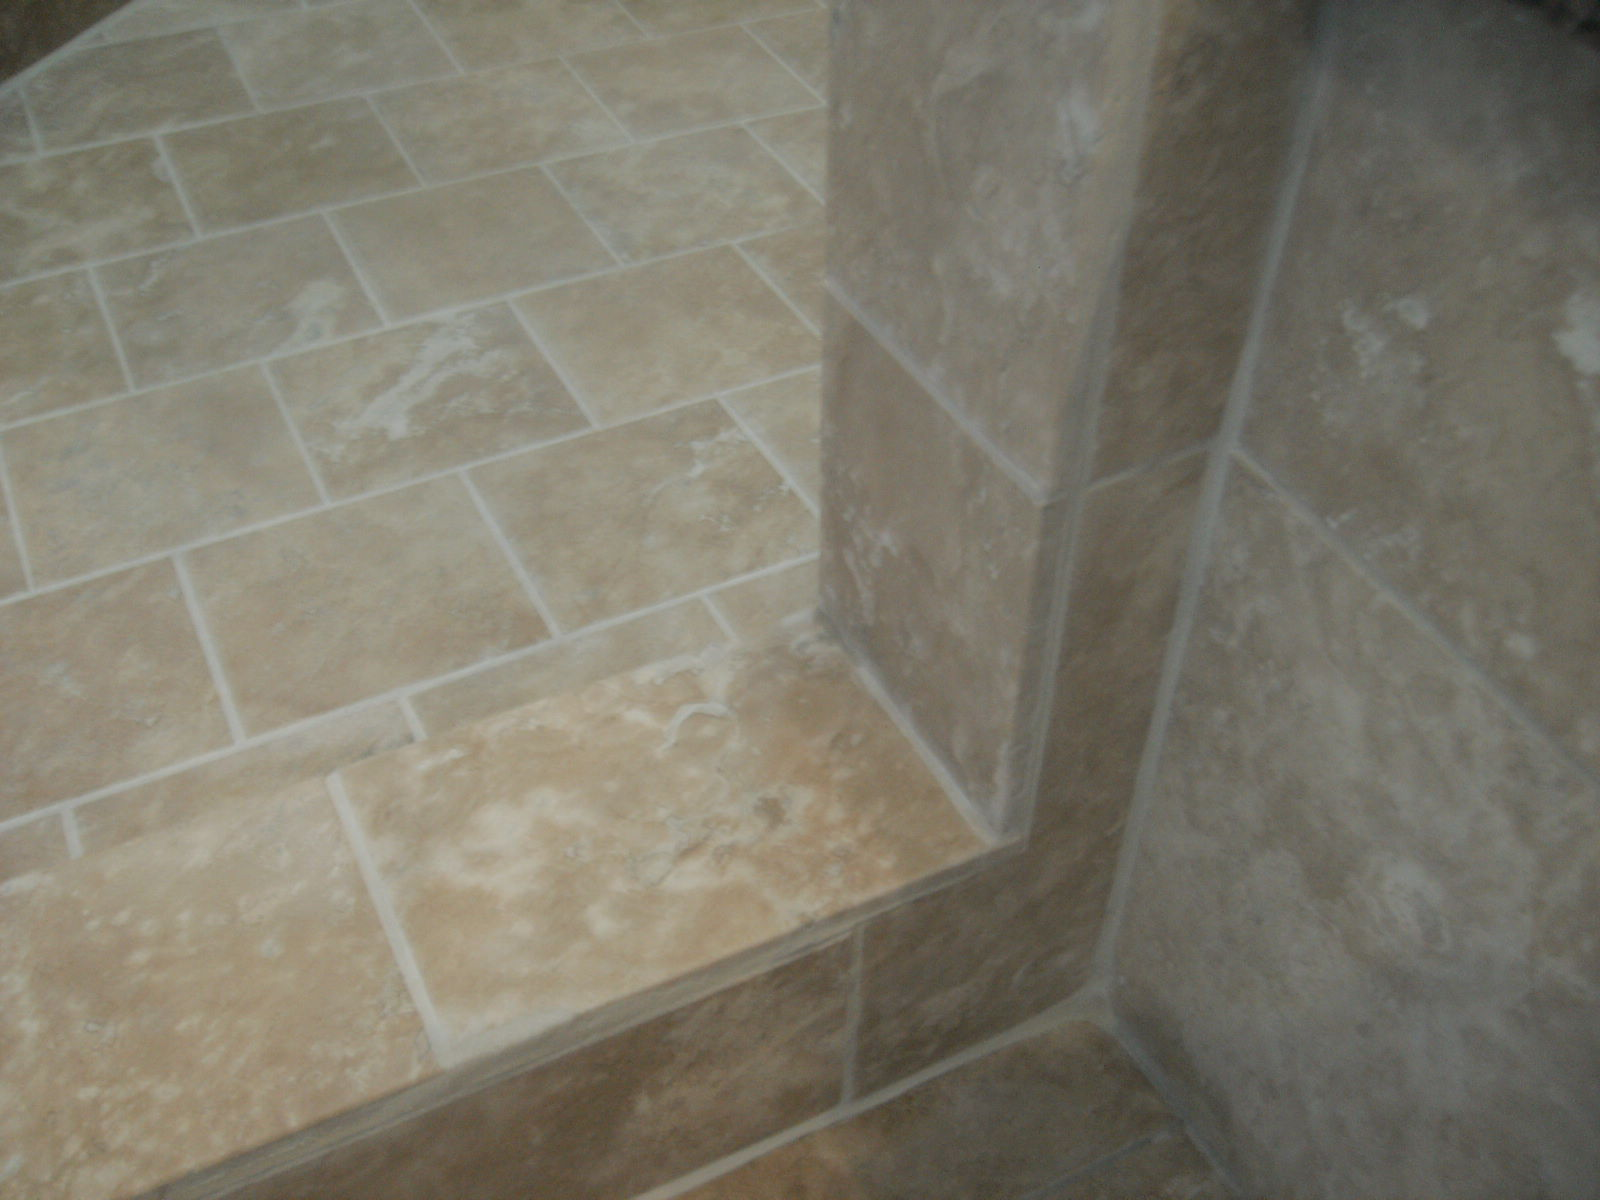 Black Mold Strachybotrys atra And Travertine Tile Confessions